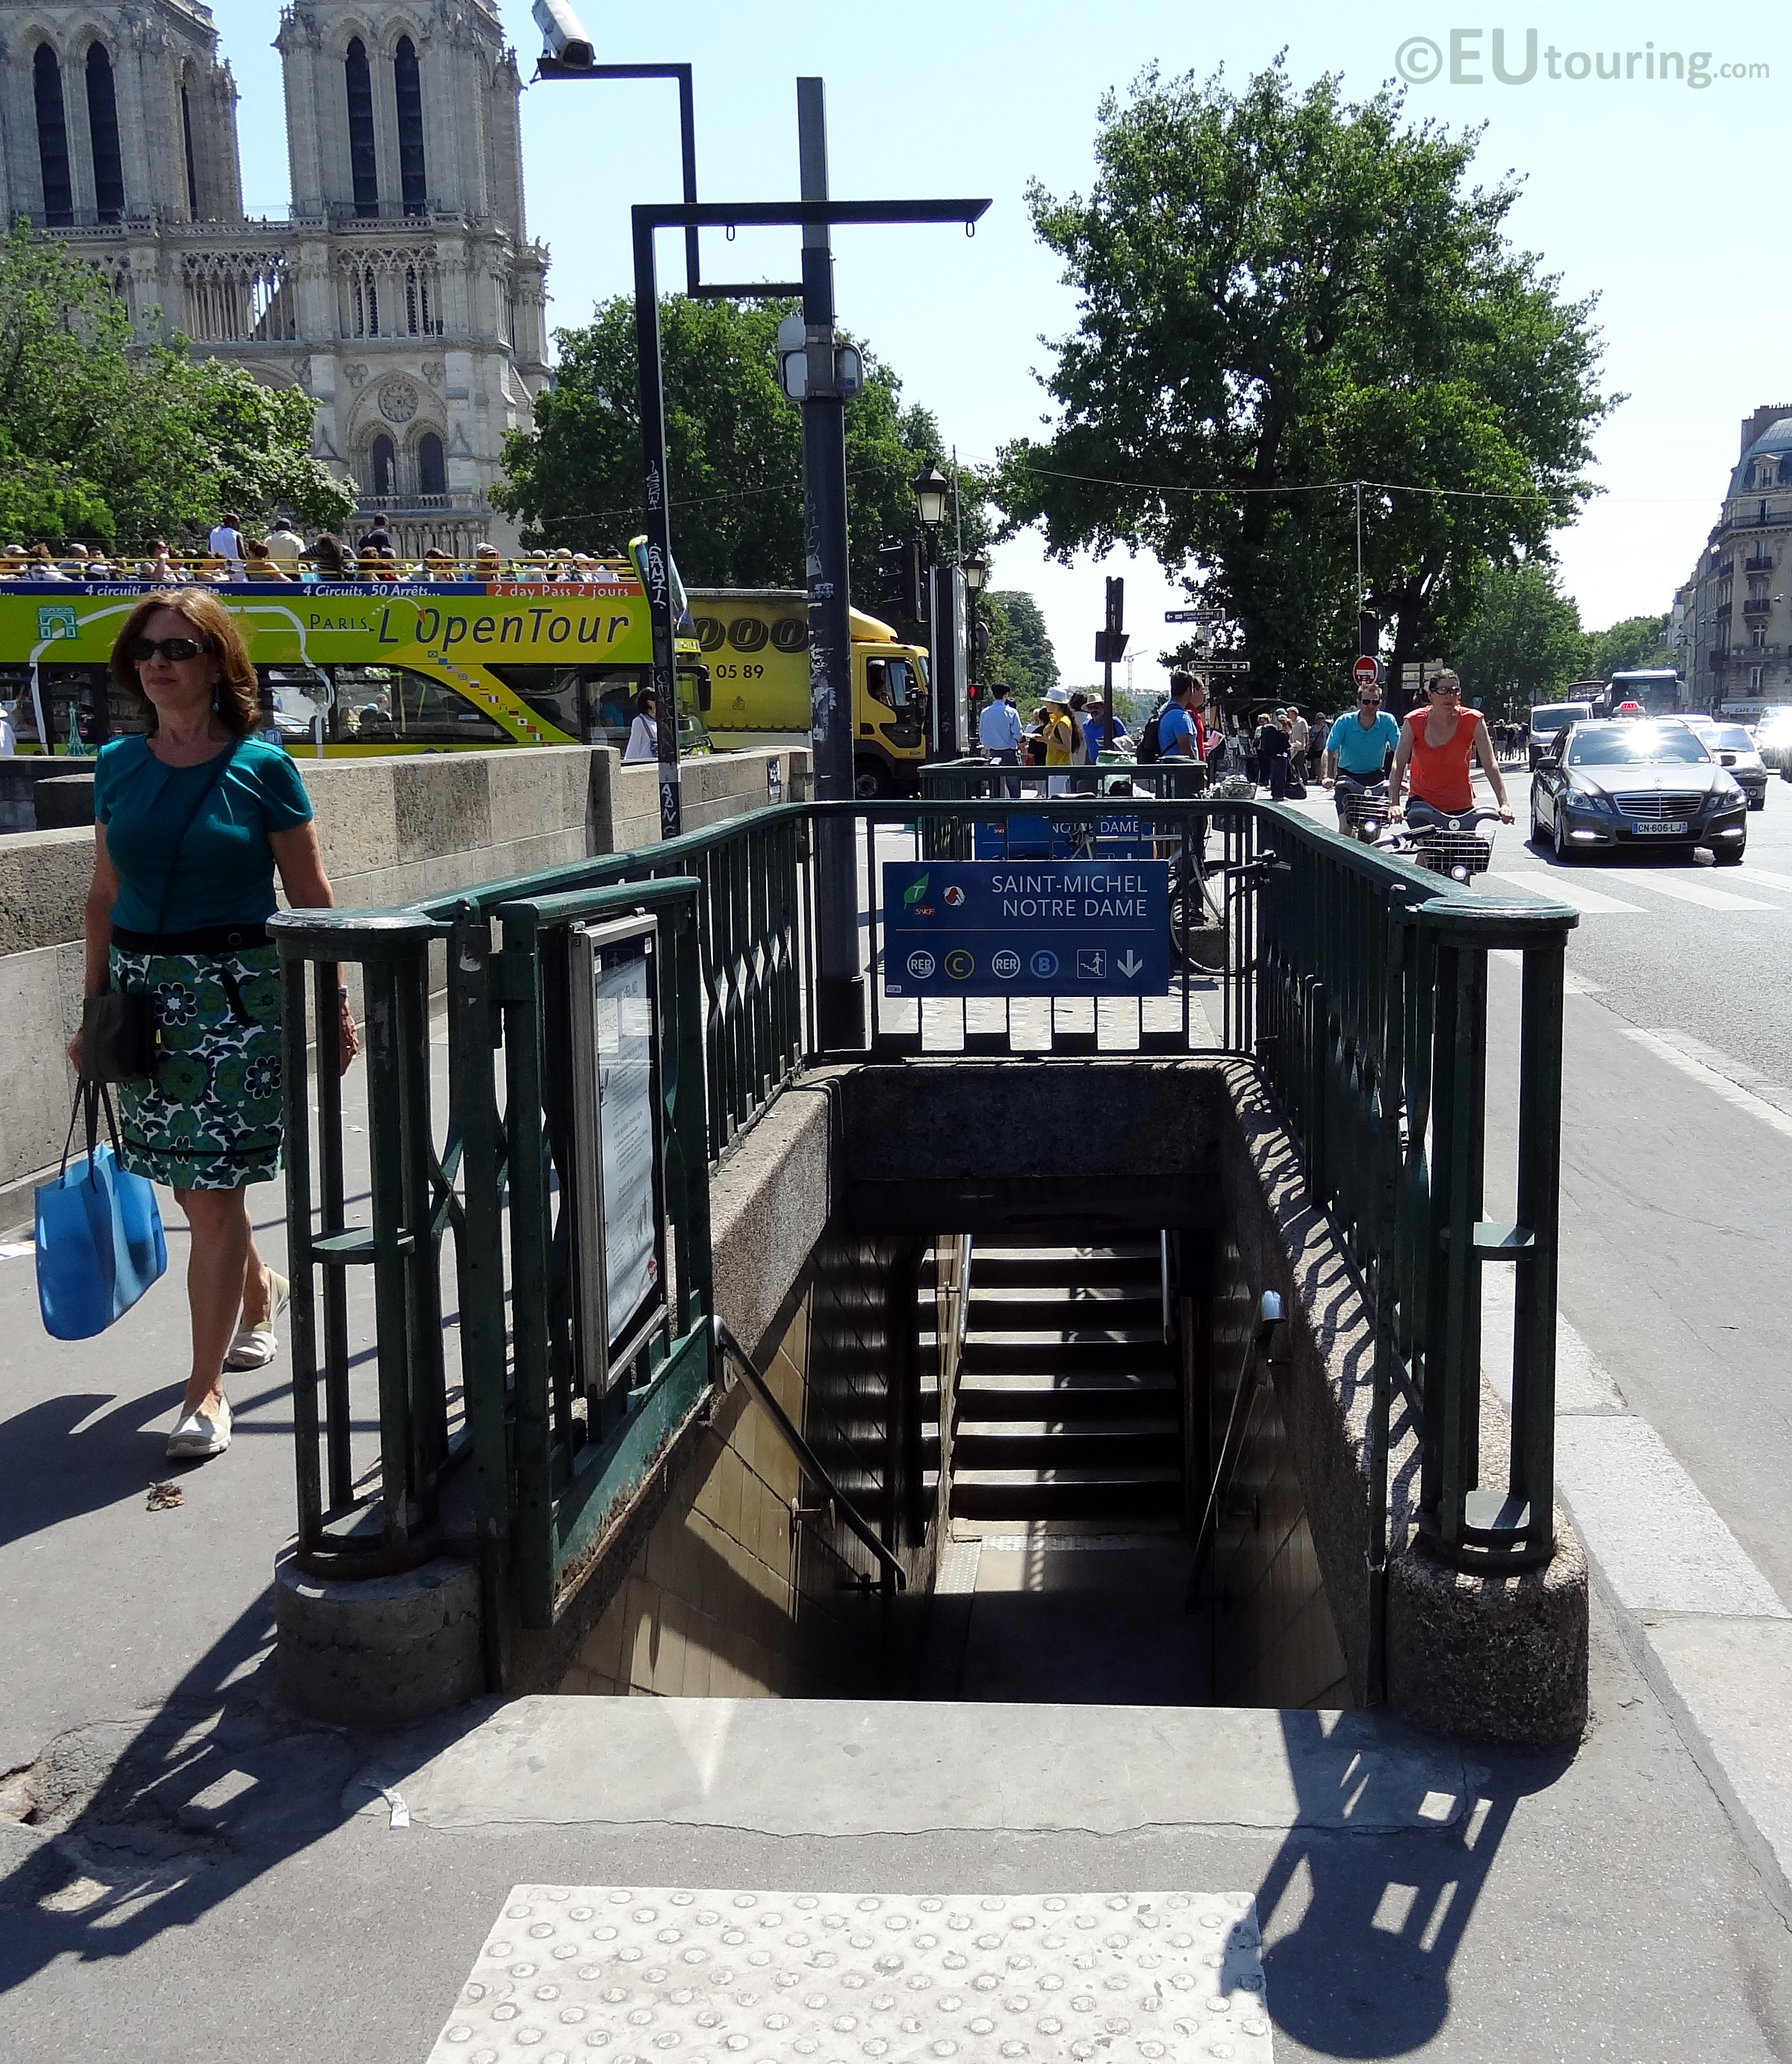 Saint michel rer entrance eutouring - Metro saint michel paris ...